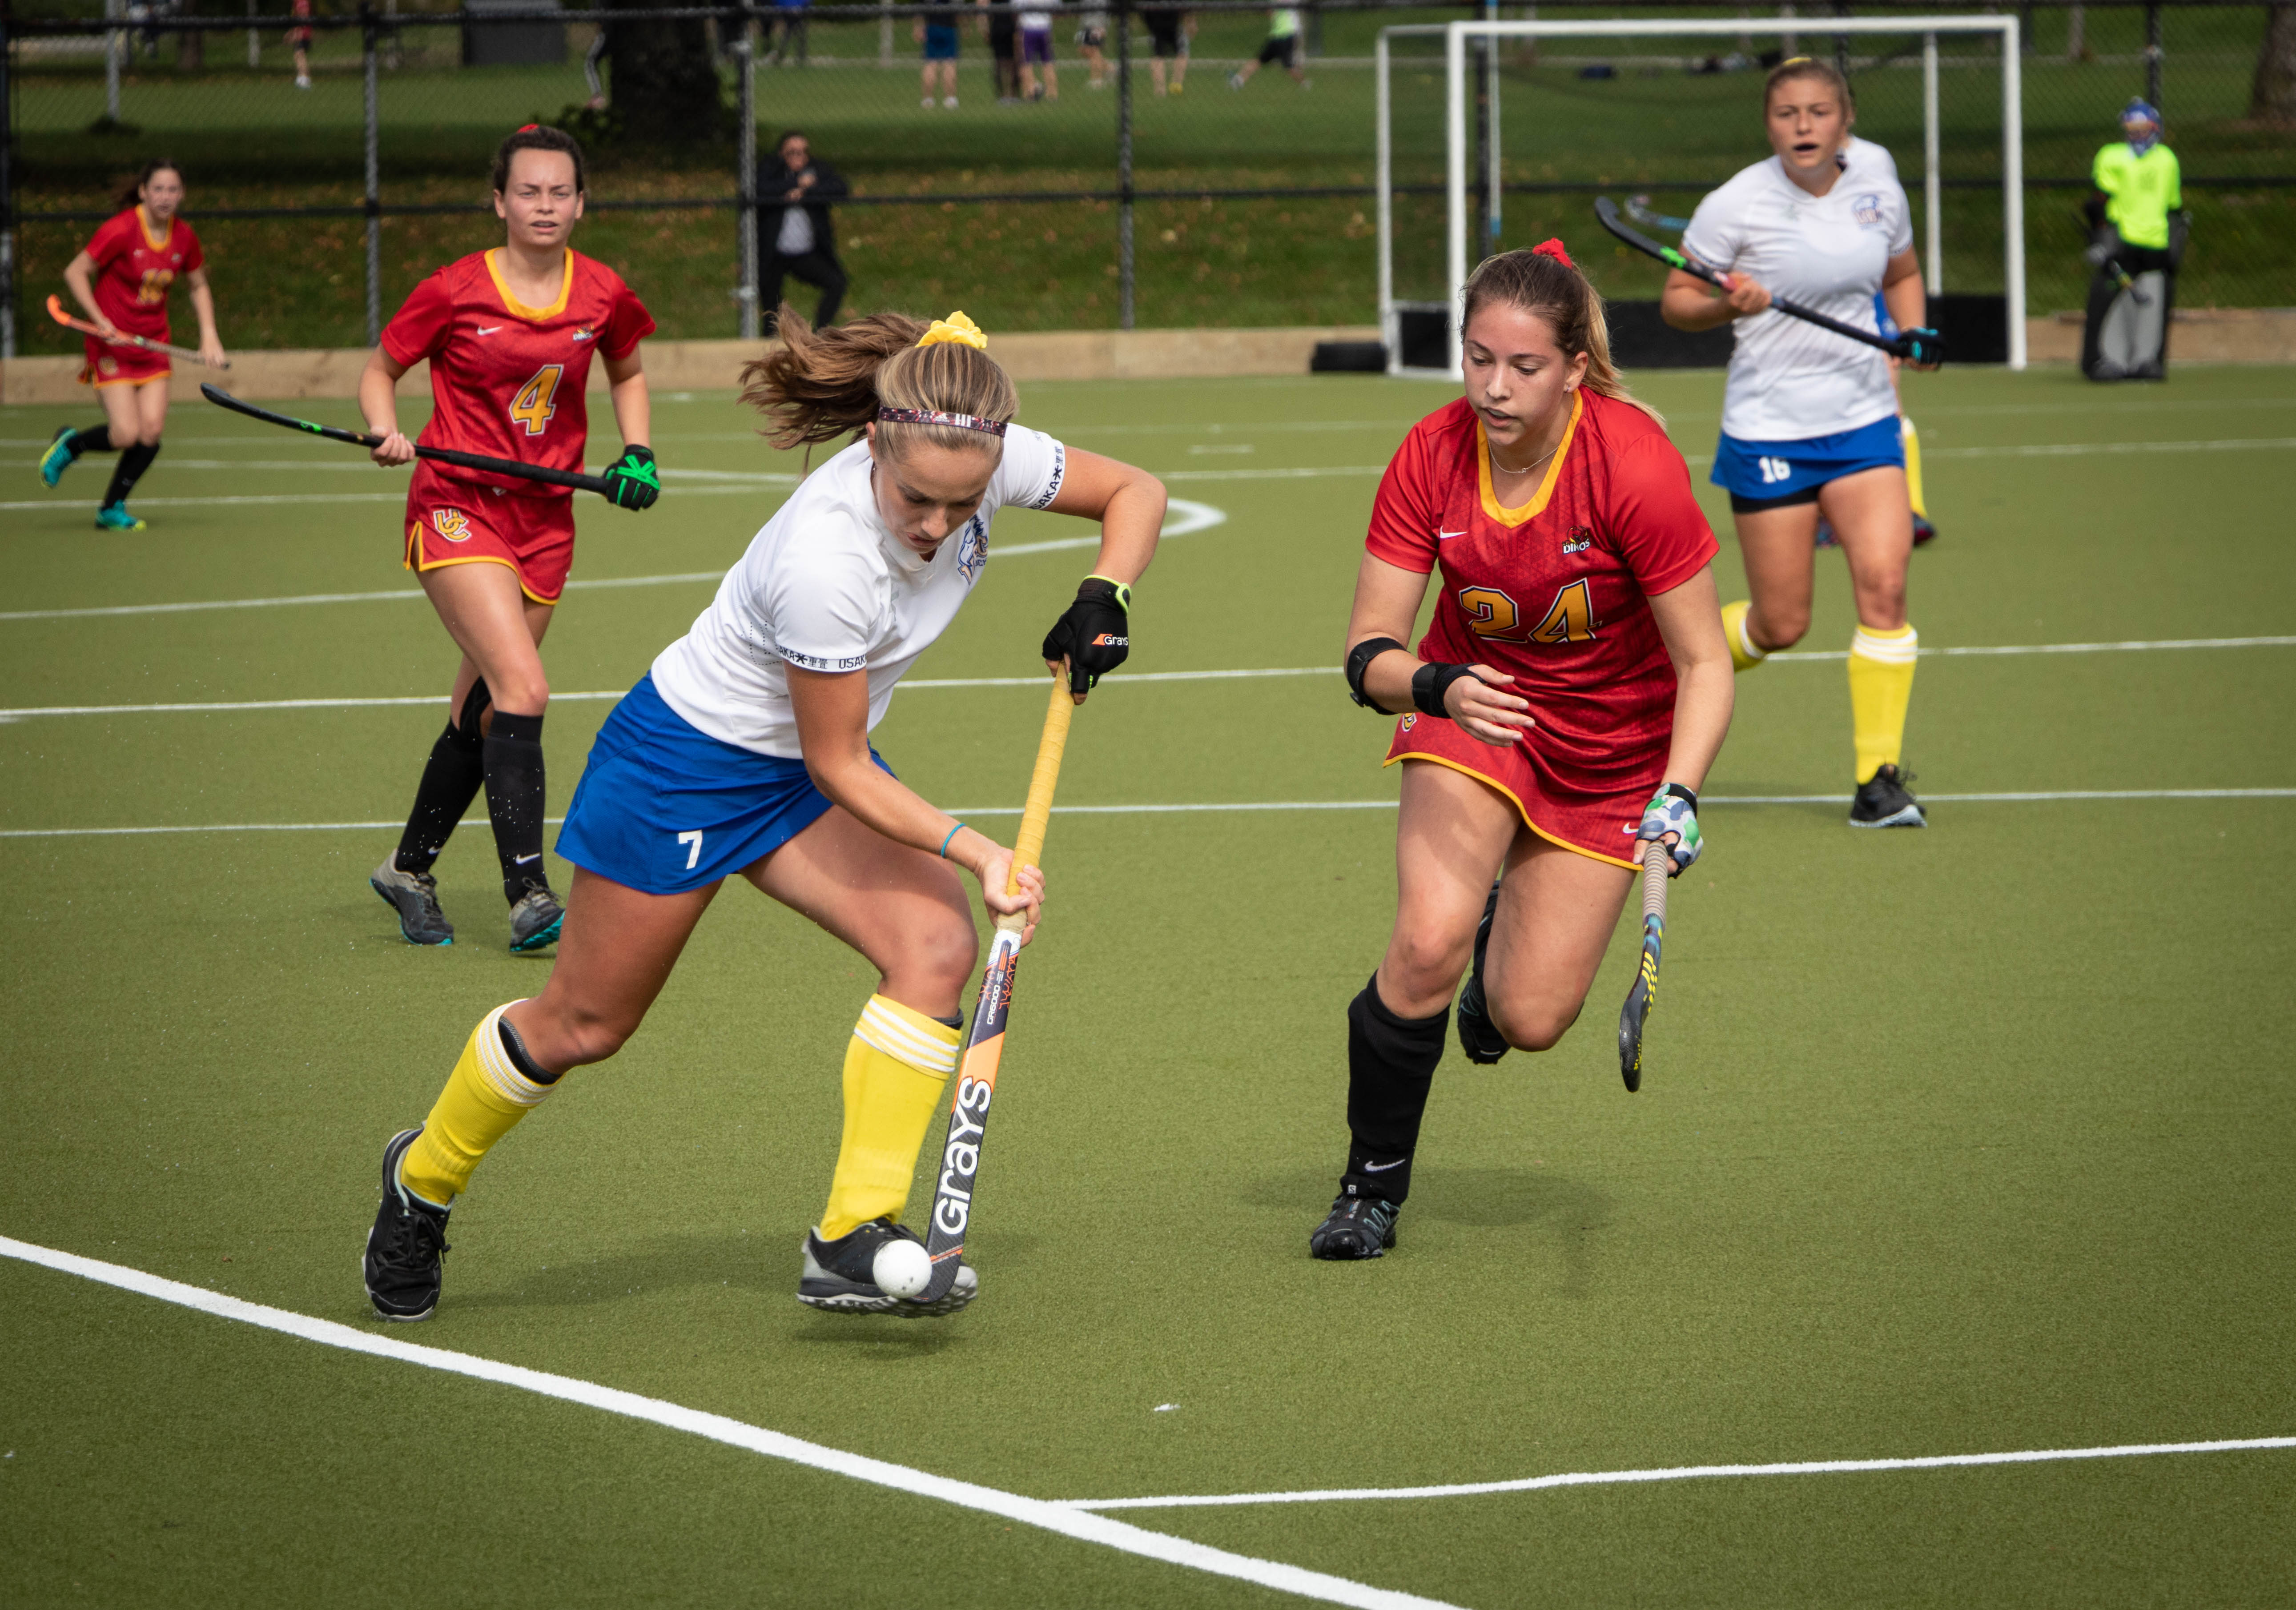 The women's field hockey team will need to break their string of draws against the Vikes in two weeks.